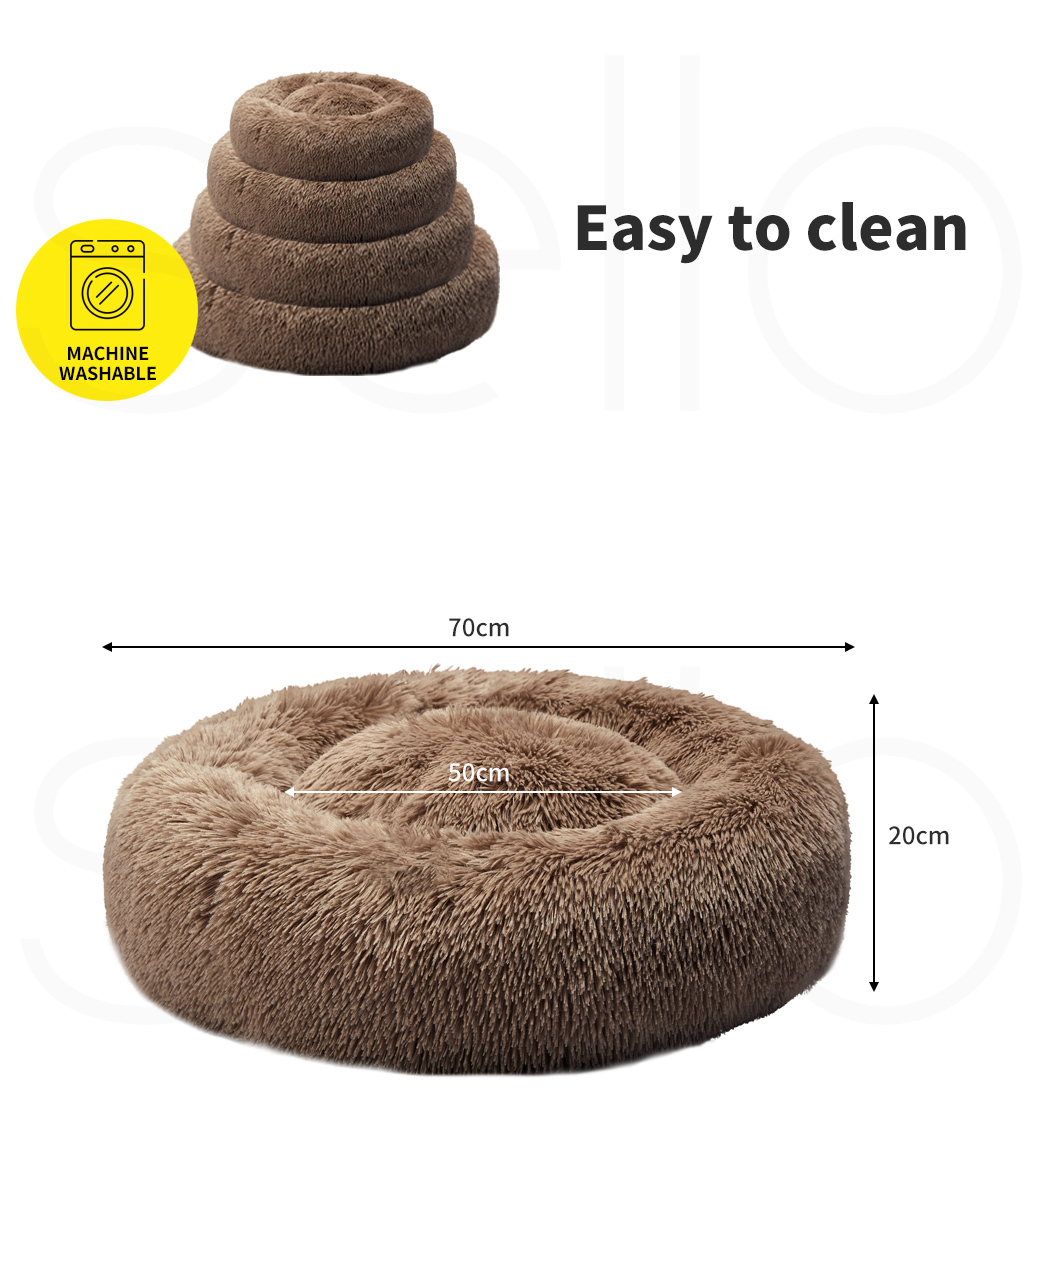 thumbnail 20 - PaWz Dog Calming Bed Cat Cave Pet Nest Soft Plush Warm Comfy Kennel Extra Large